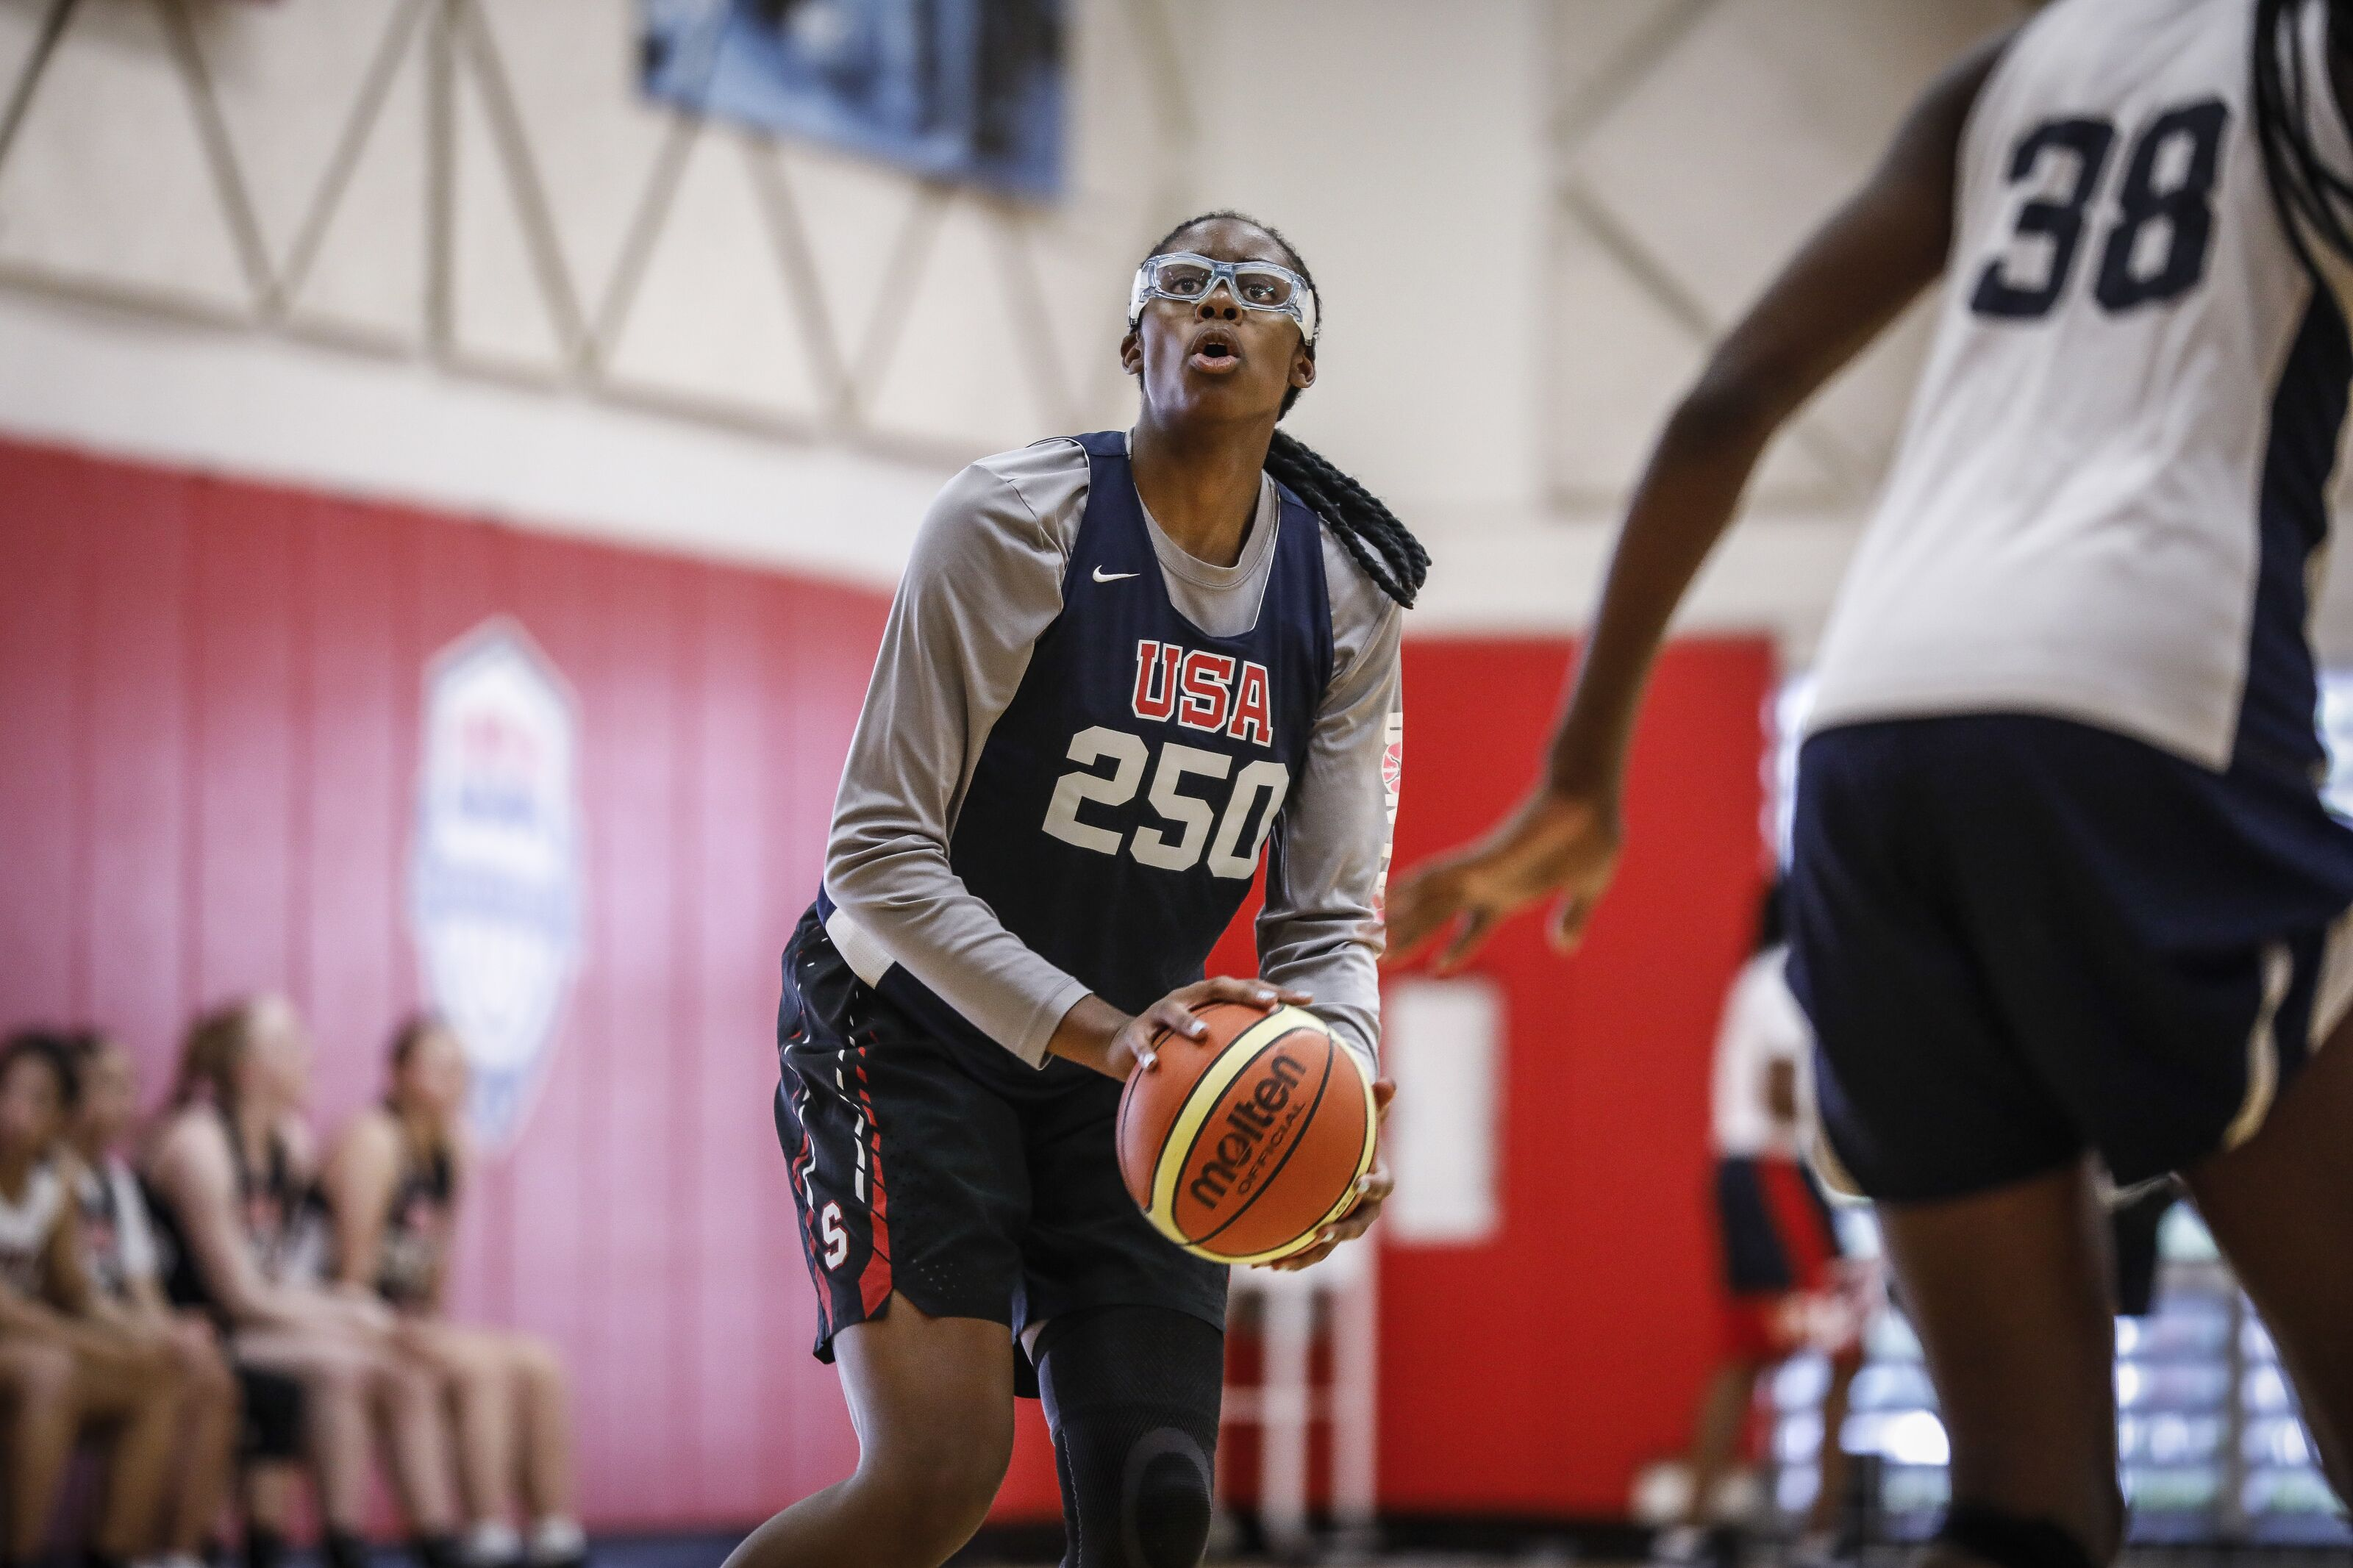 3d8babe9f51 Girls basketball news  The 2019 McDonald s All-American rosters are set